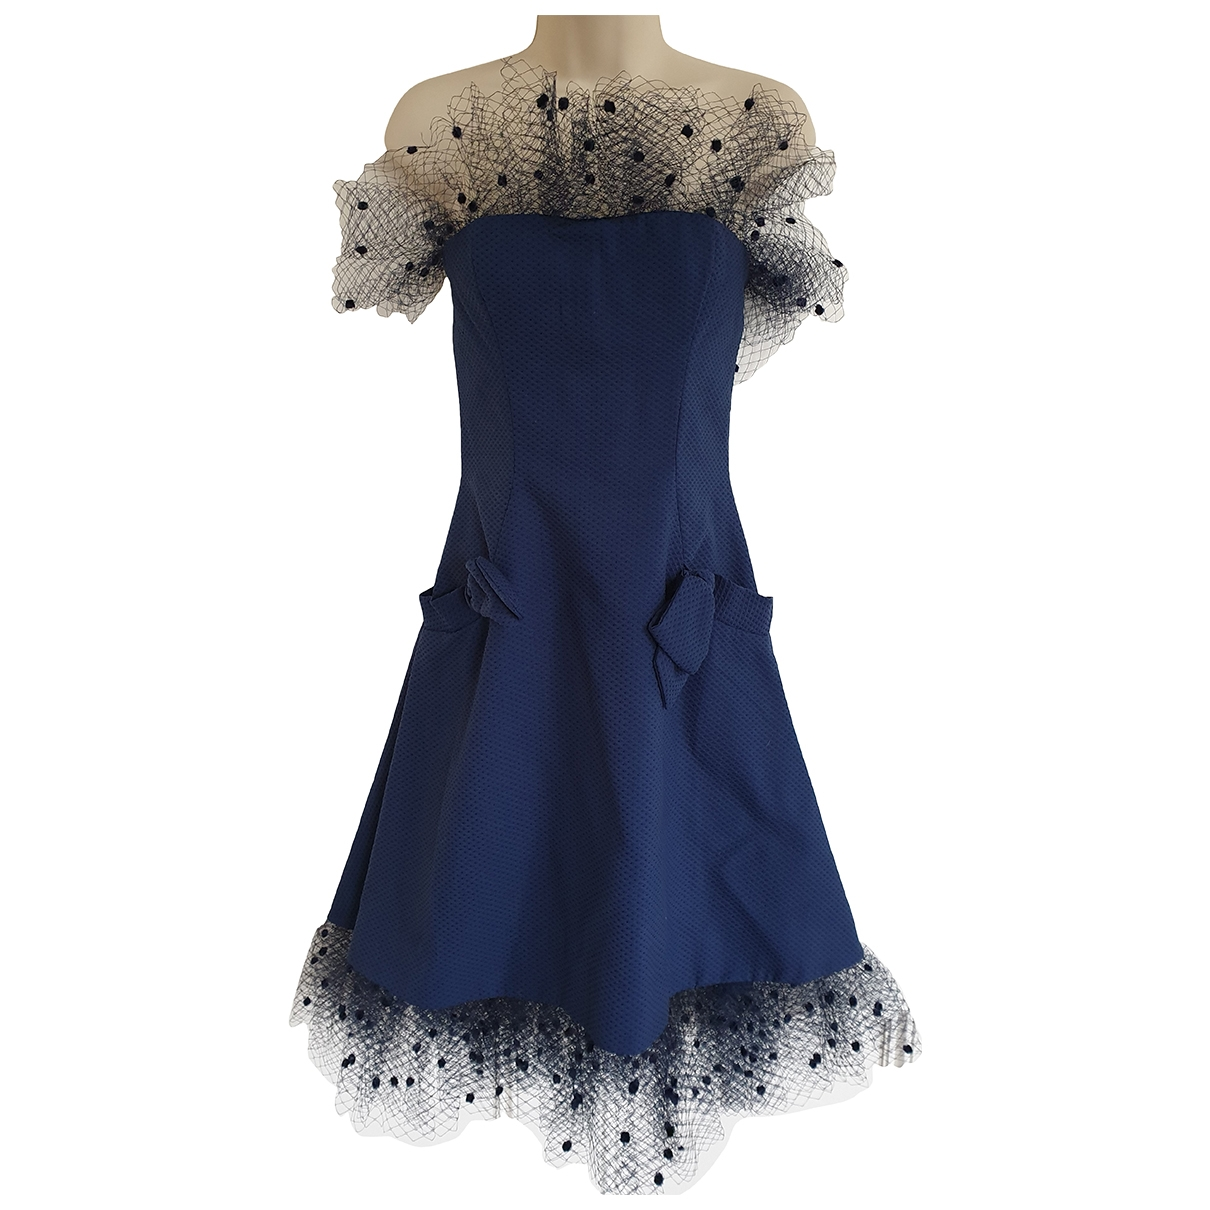 Alexis Mabille \N Blue Cotton dress for Women 38 FR